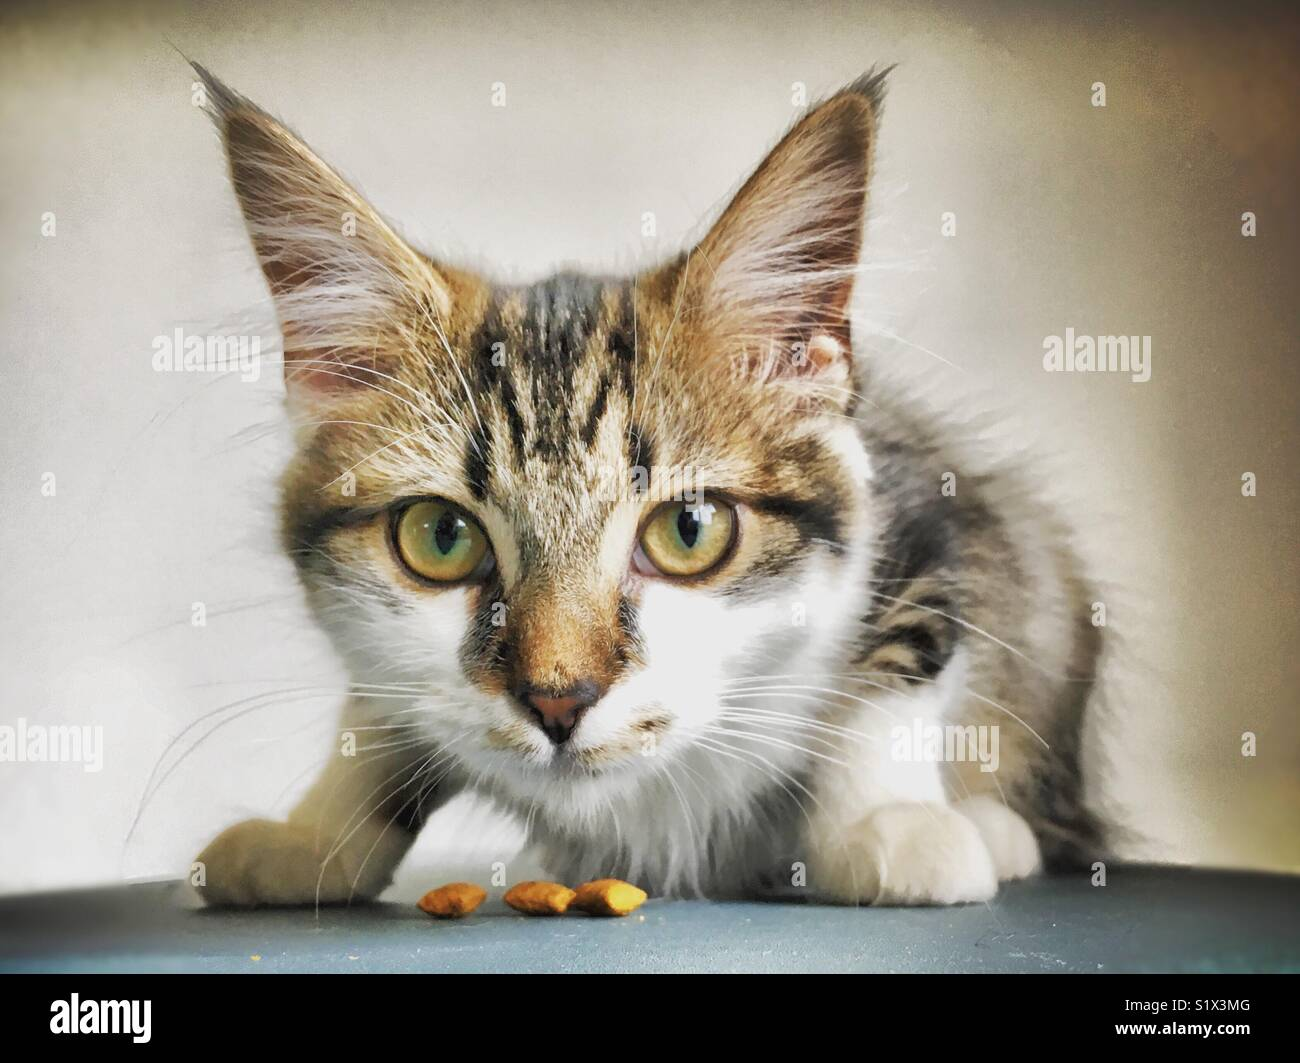 Close up of cat sat crouching about to eat treats - Stock Image